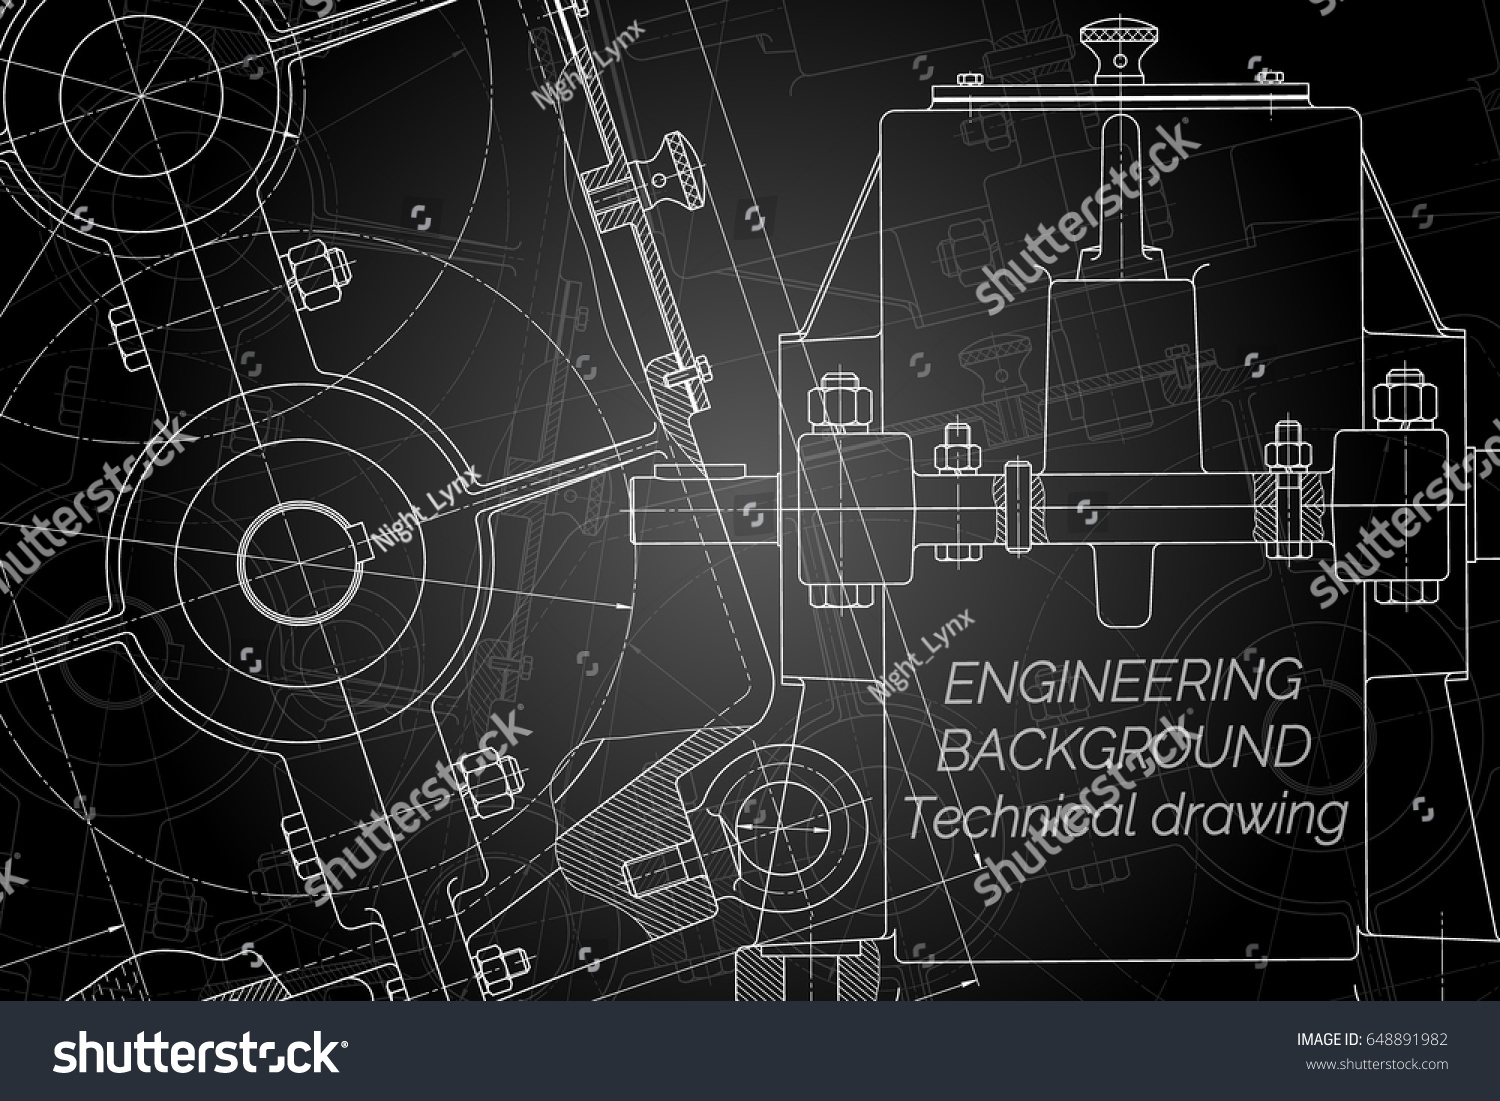 Mechanical engineering drawings on black background stock vector mechanical engineering drawings on black background reducer technical design cover blueprint malvernweather Images